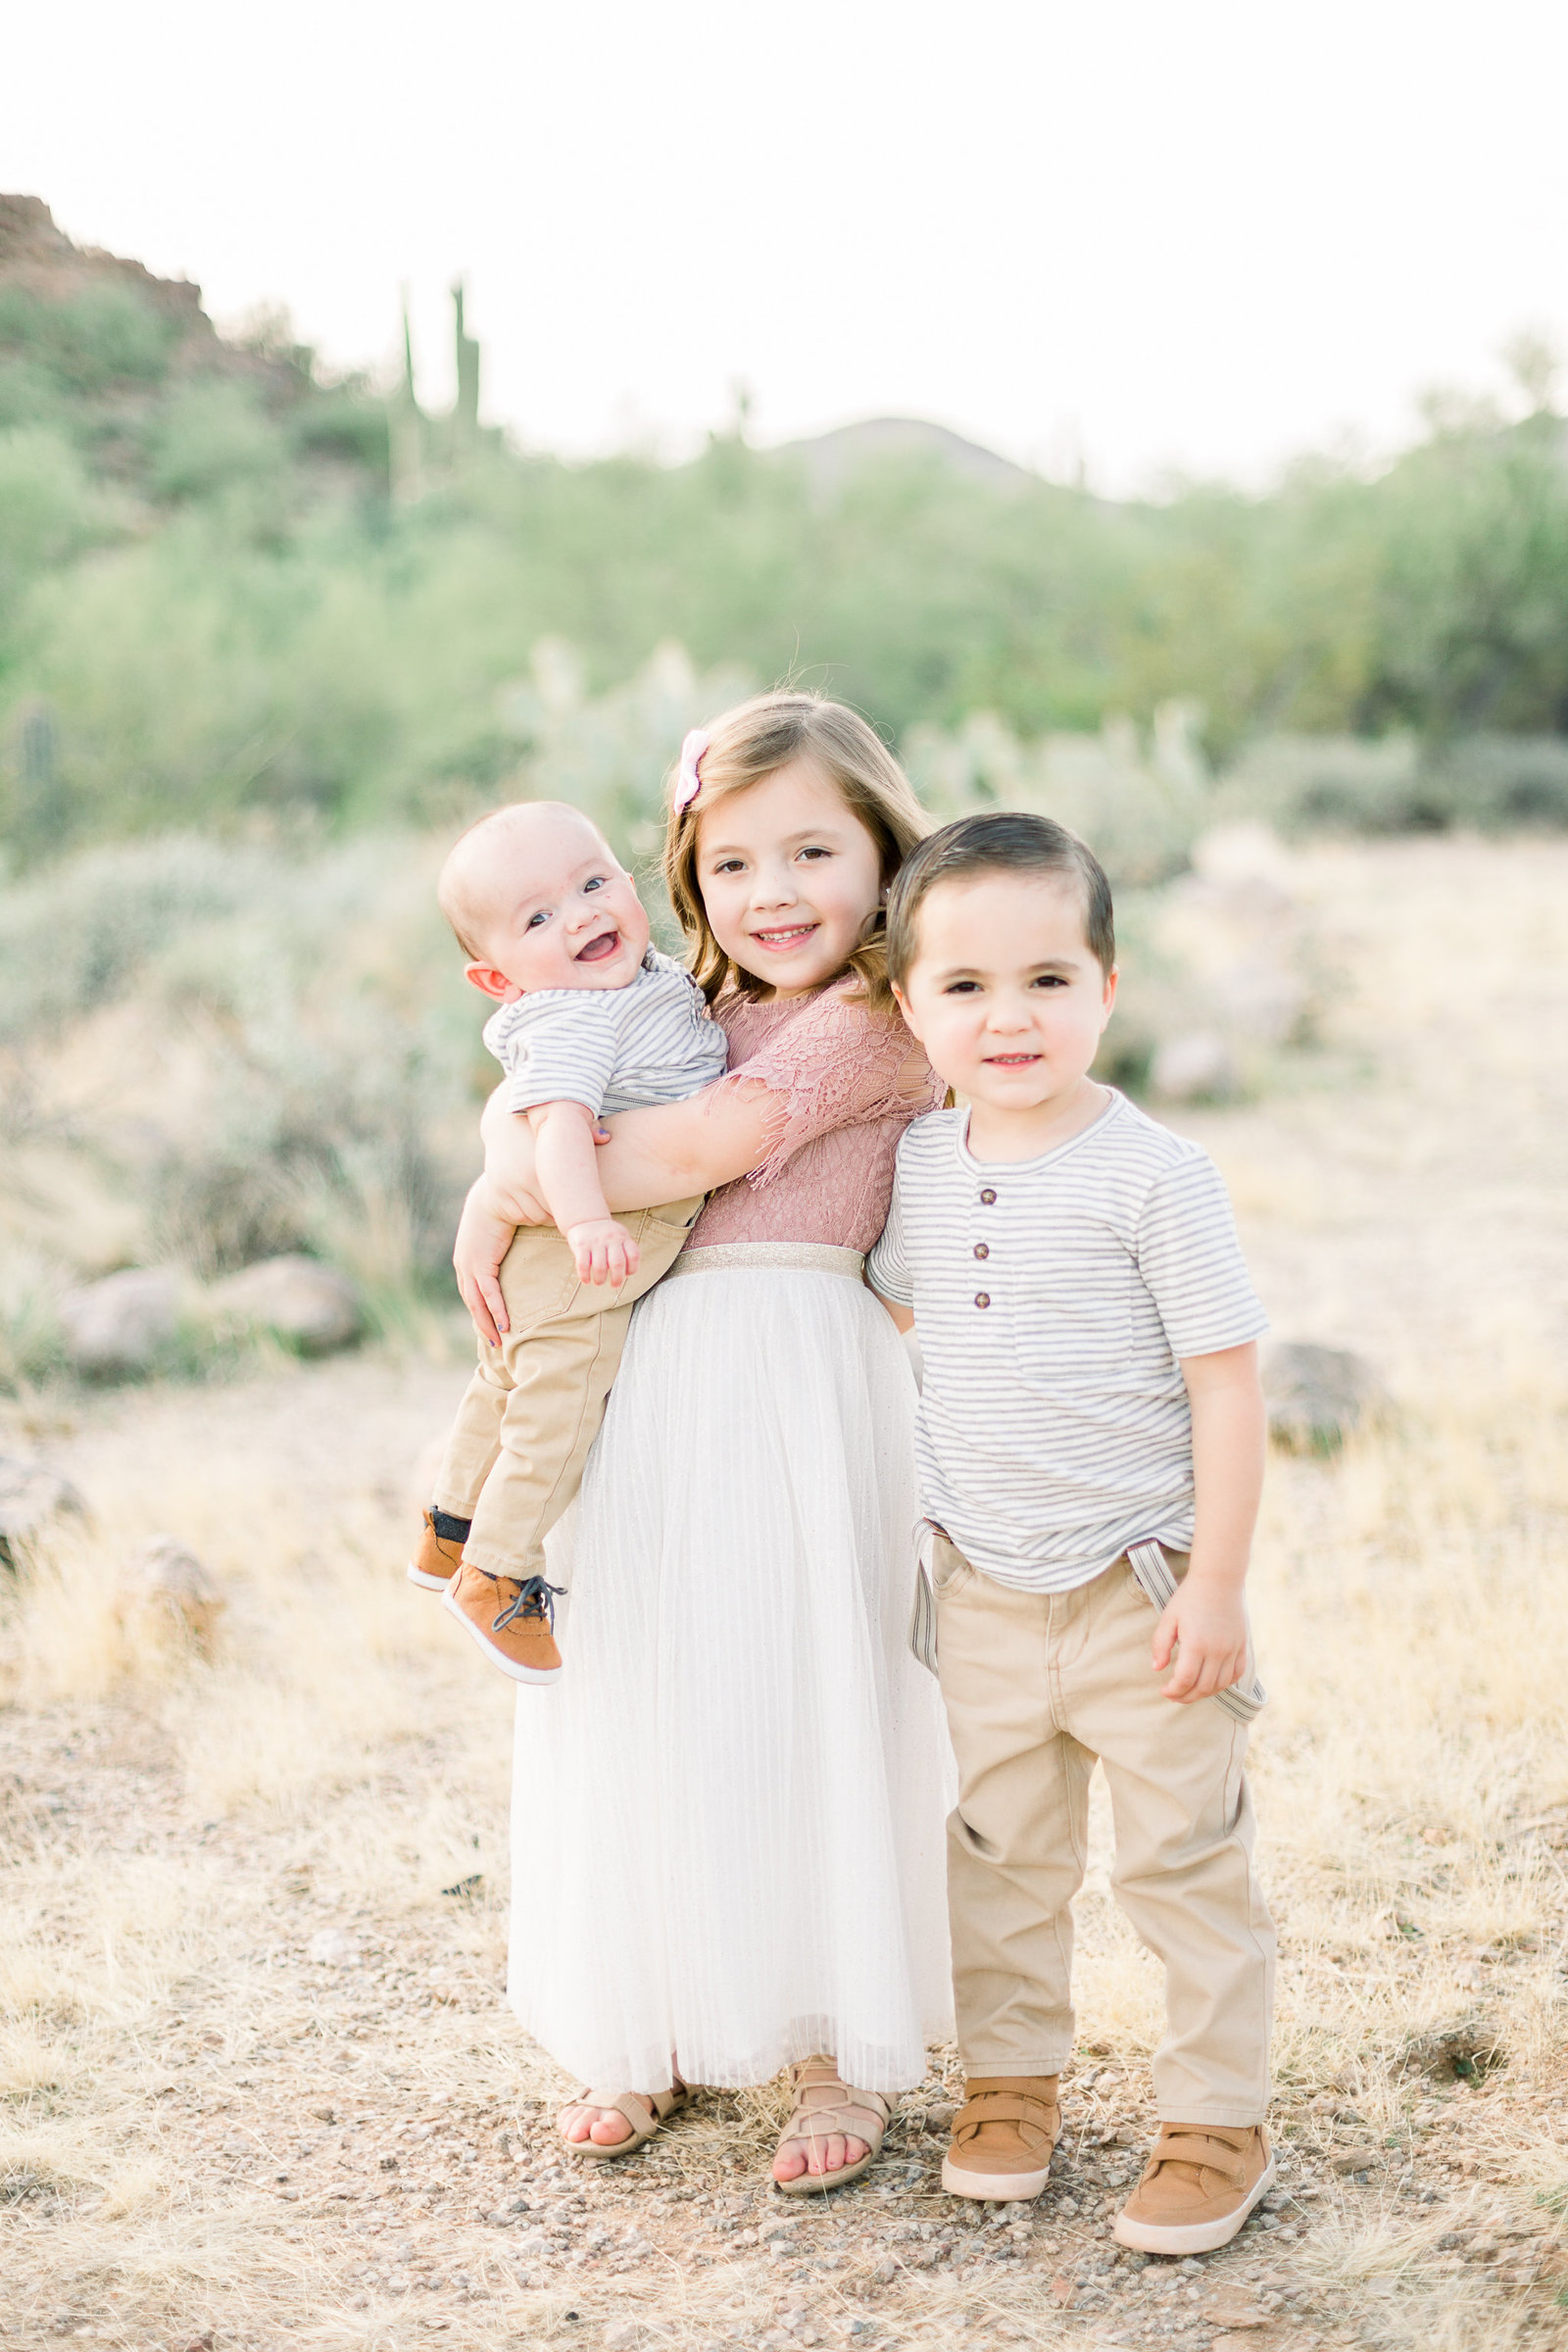 Aly-Kirk-Photo-Mesa-Photographer-Pesquera-Family-0014